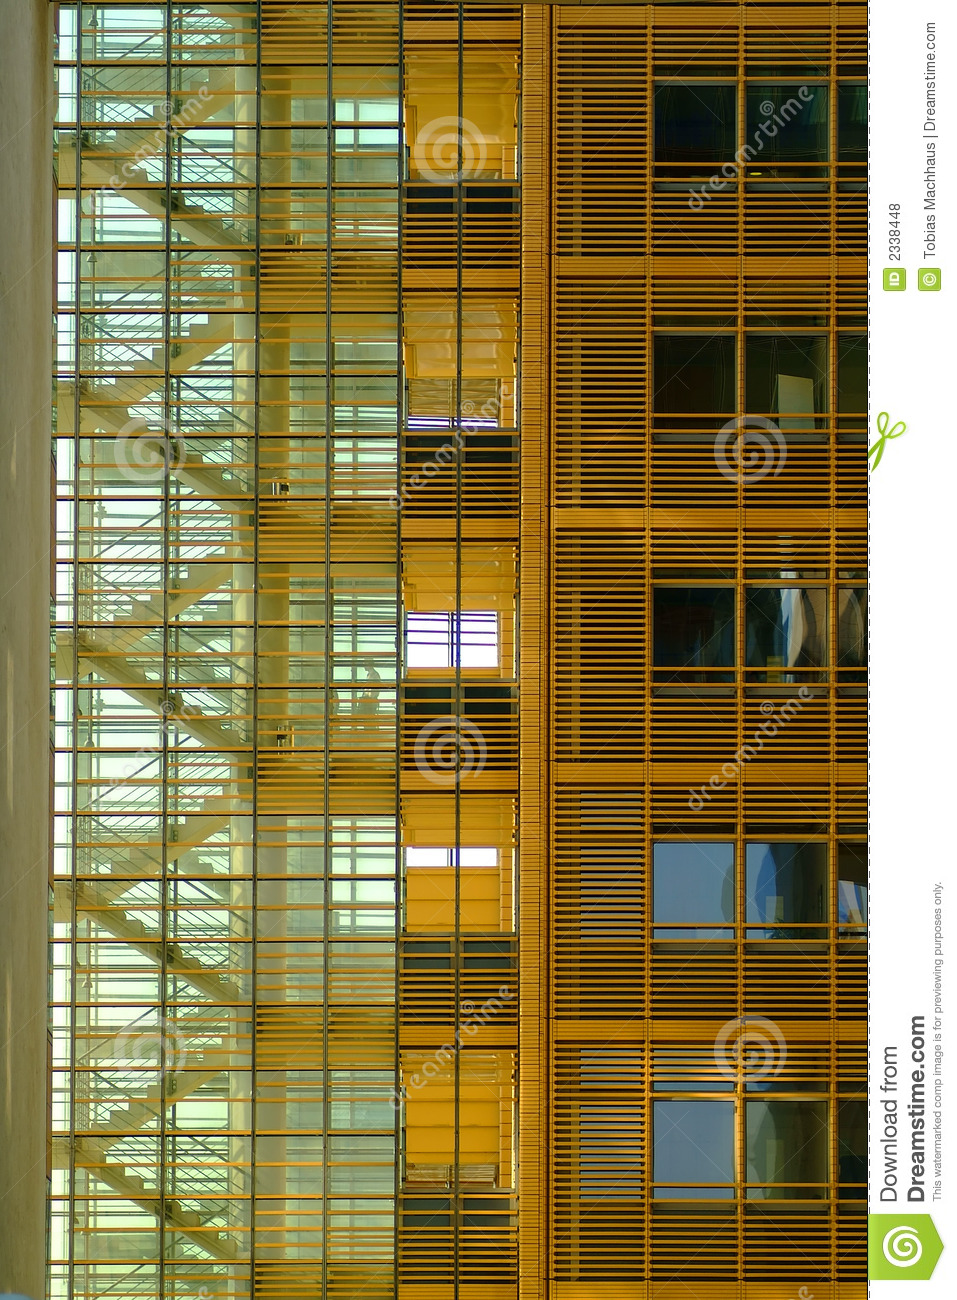 Office Building Staircase Royalty Free Stock Photos